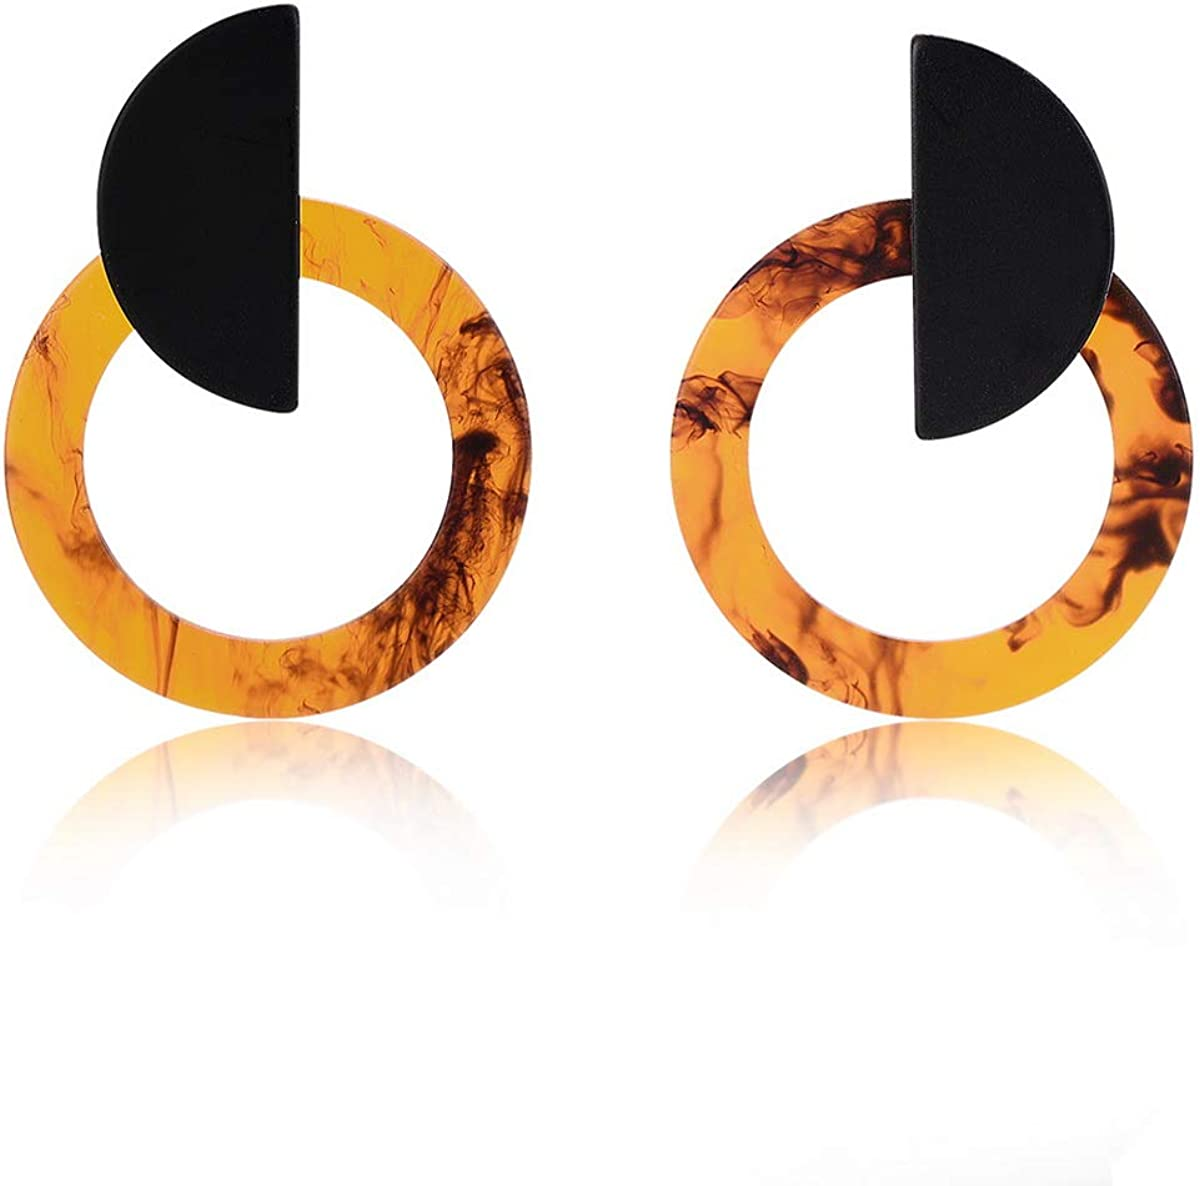 IDB Delicate Acetate Circle Push-Back Earrings with a Stainless Steel Post- Available in Marble in Gold fire Tones